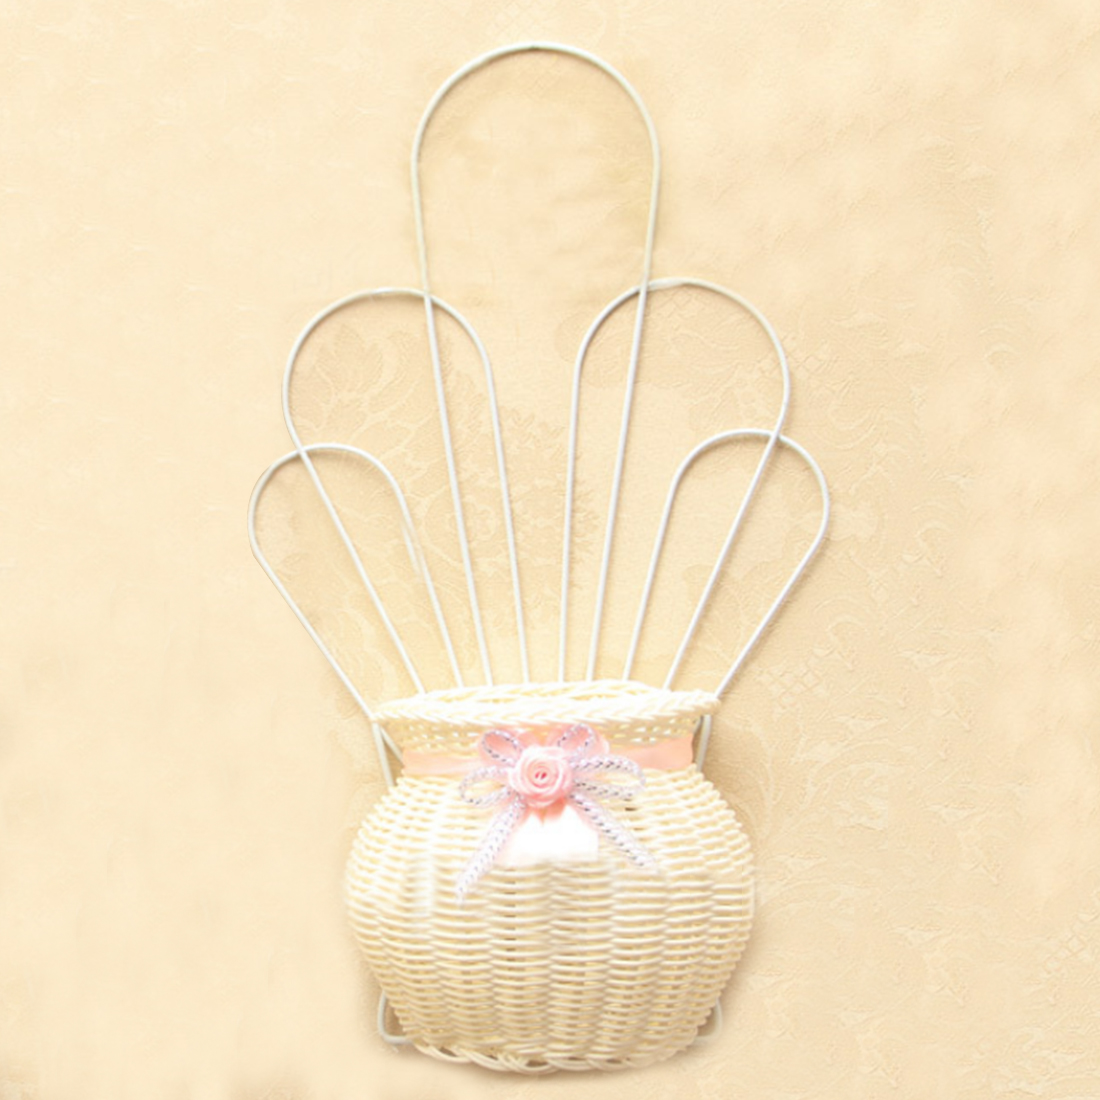 Decorative Basket Wall Art Compare Prices On Flowers Hanging Baskets Online Shopping Buy Low